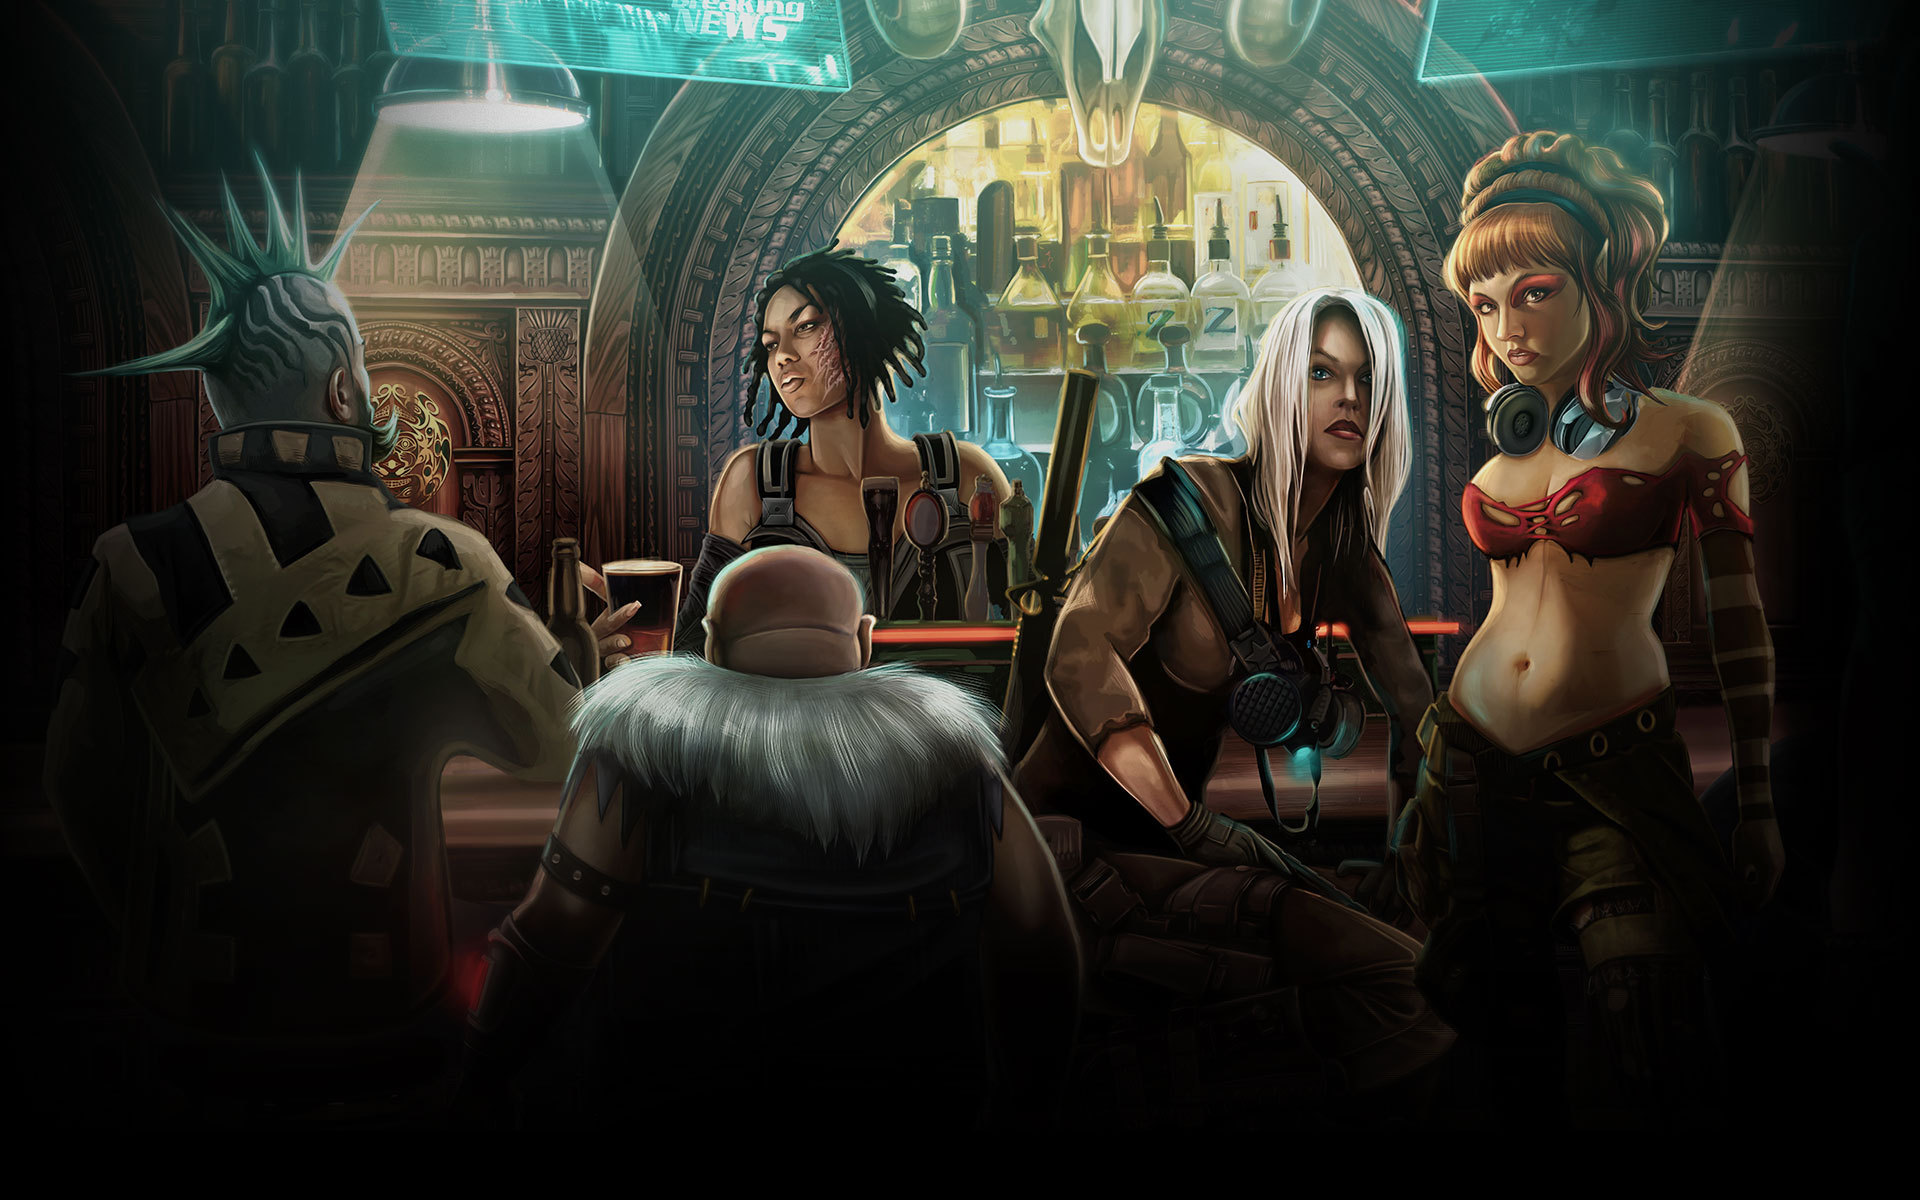 Shadowrun RPG Artwork